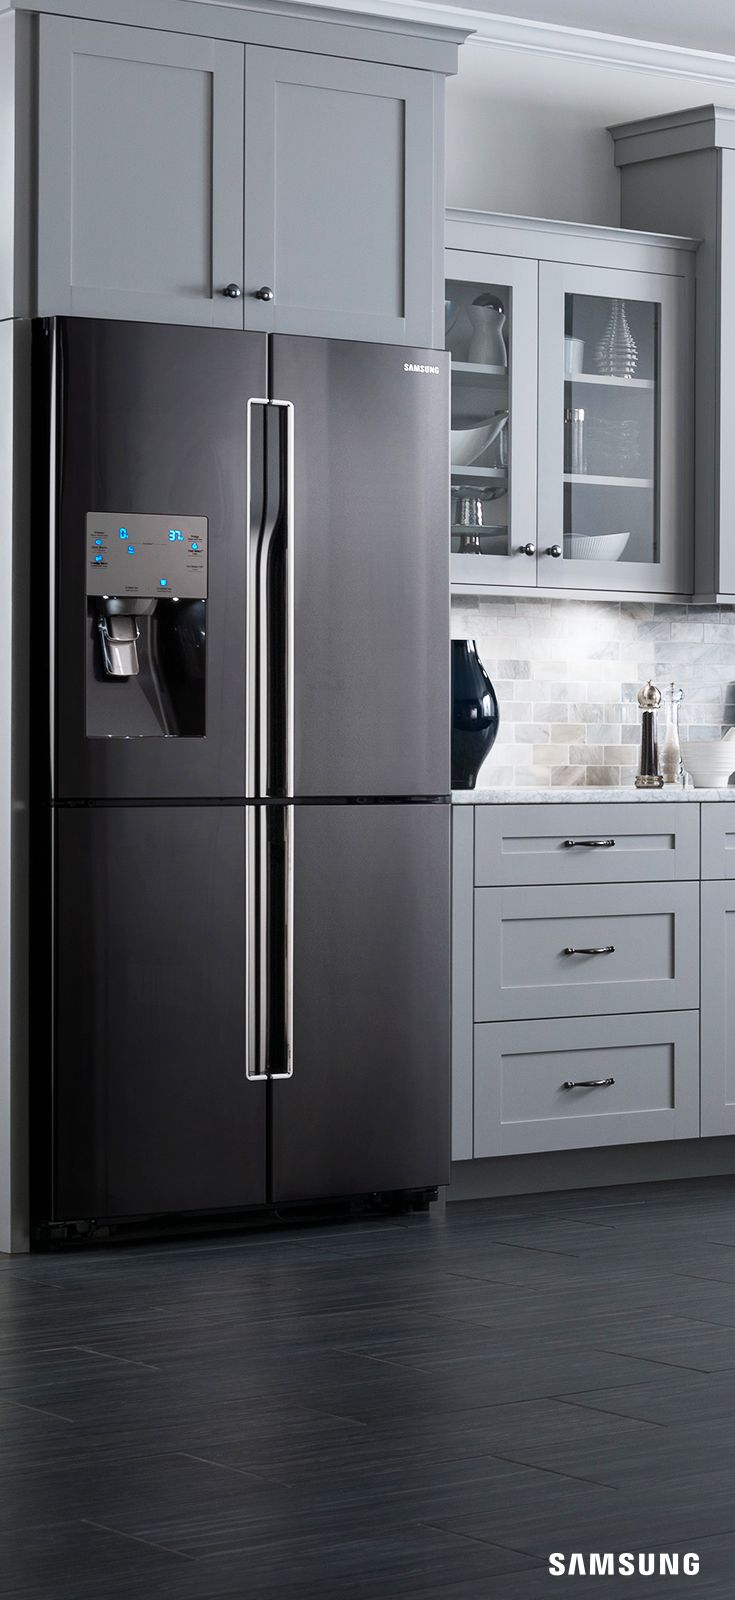 stainless steel kitchen inspiration stainless steel kitchen cabinets The next thing in kitchen inspiration is the Samsung Black Stainless Steel 4 Door Flex